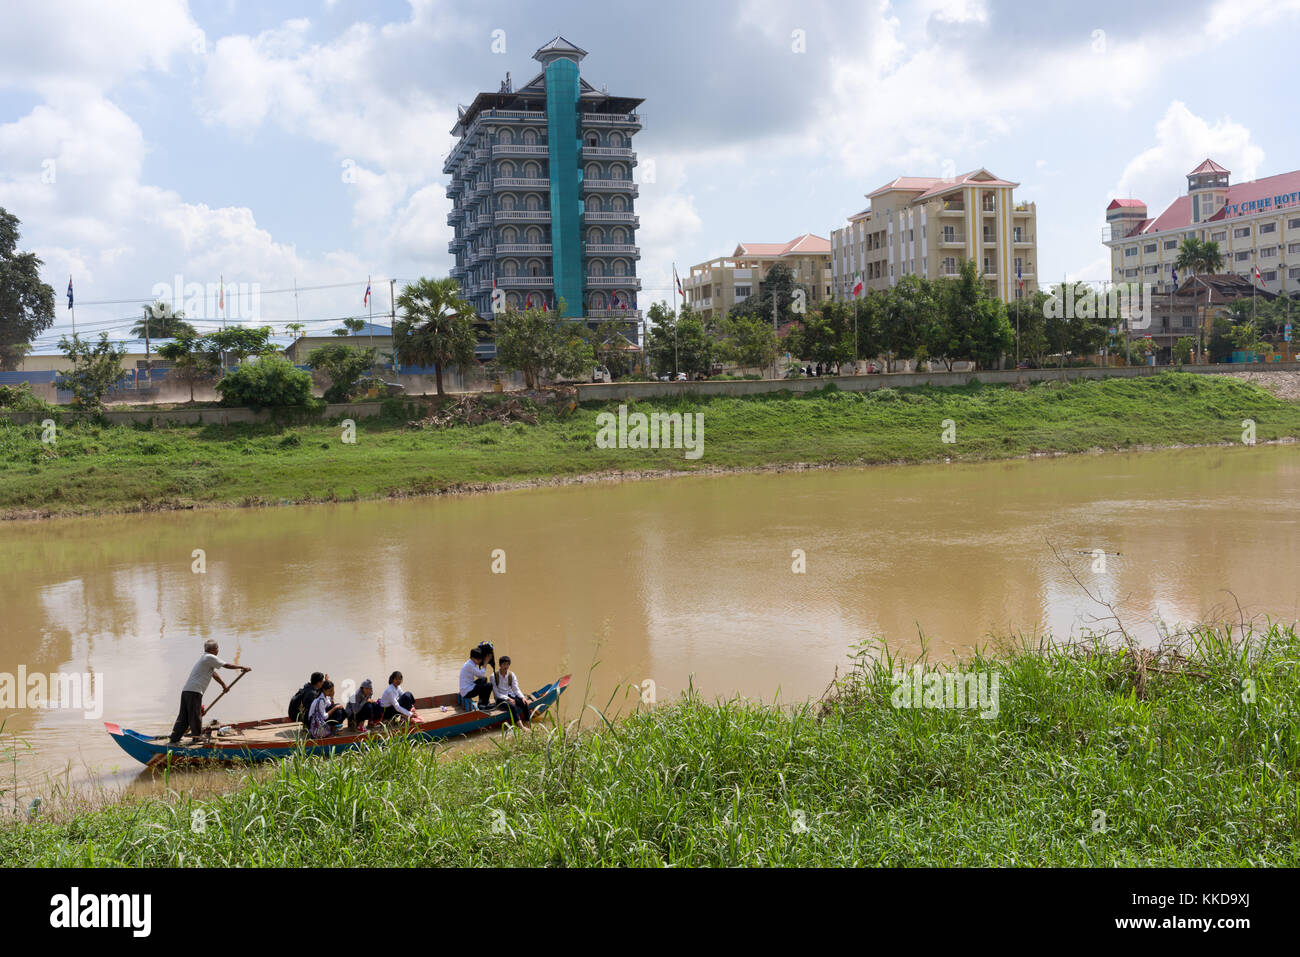 Stung Sangke River in Battambang city - Stock Image